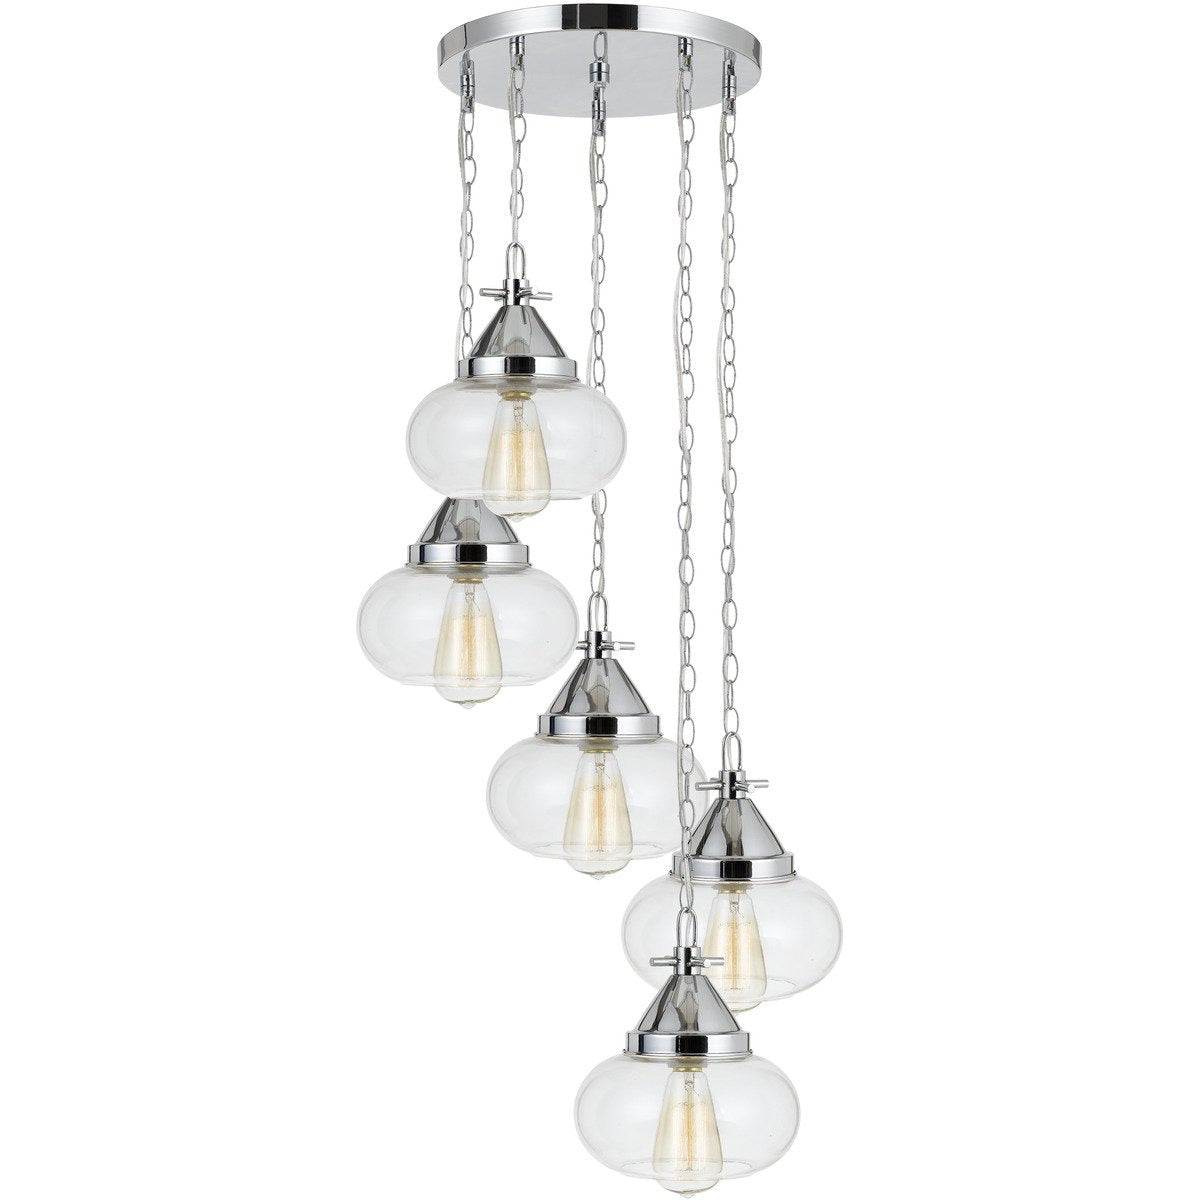 Chandeliers & Pendants - 5 Bulb Wind Chime Design Chandelier With Metal Fame And Glass Shade, Silver